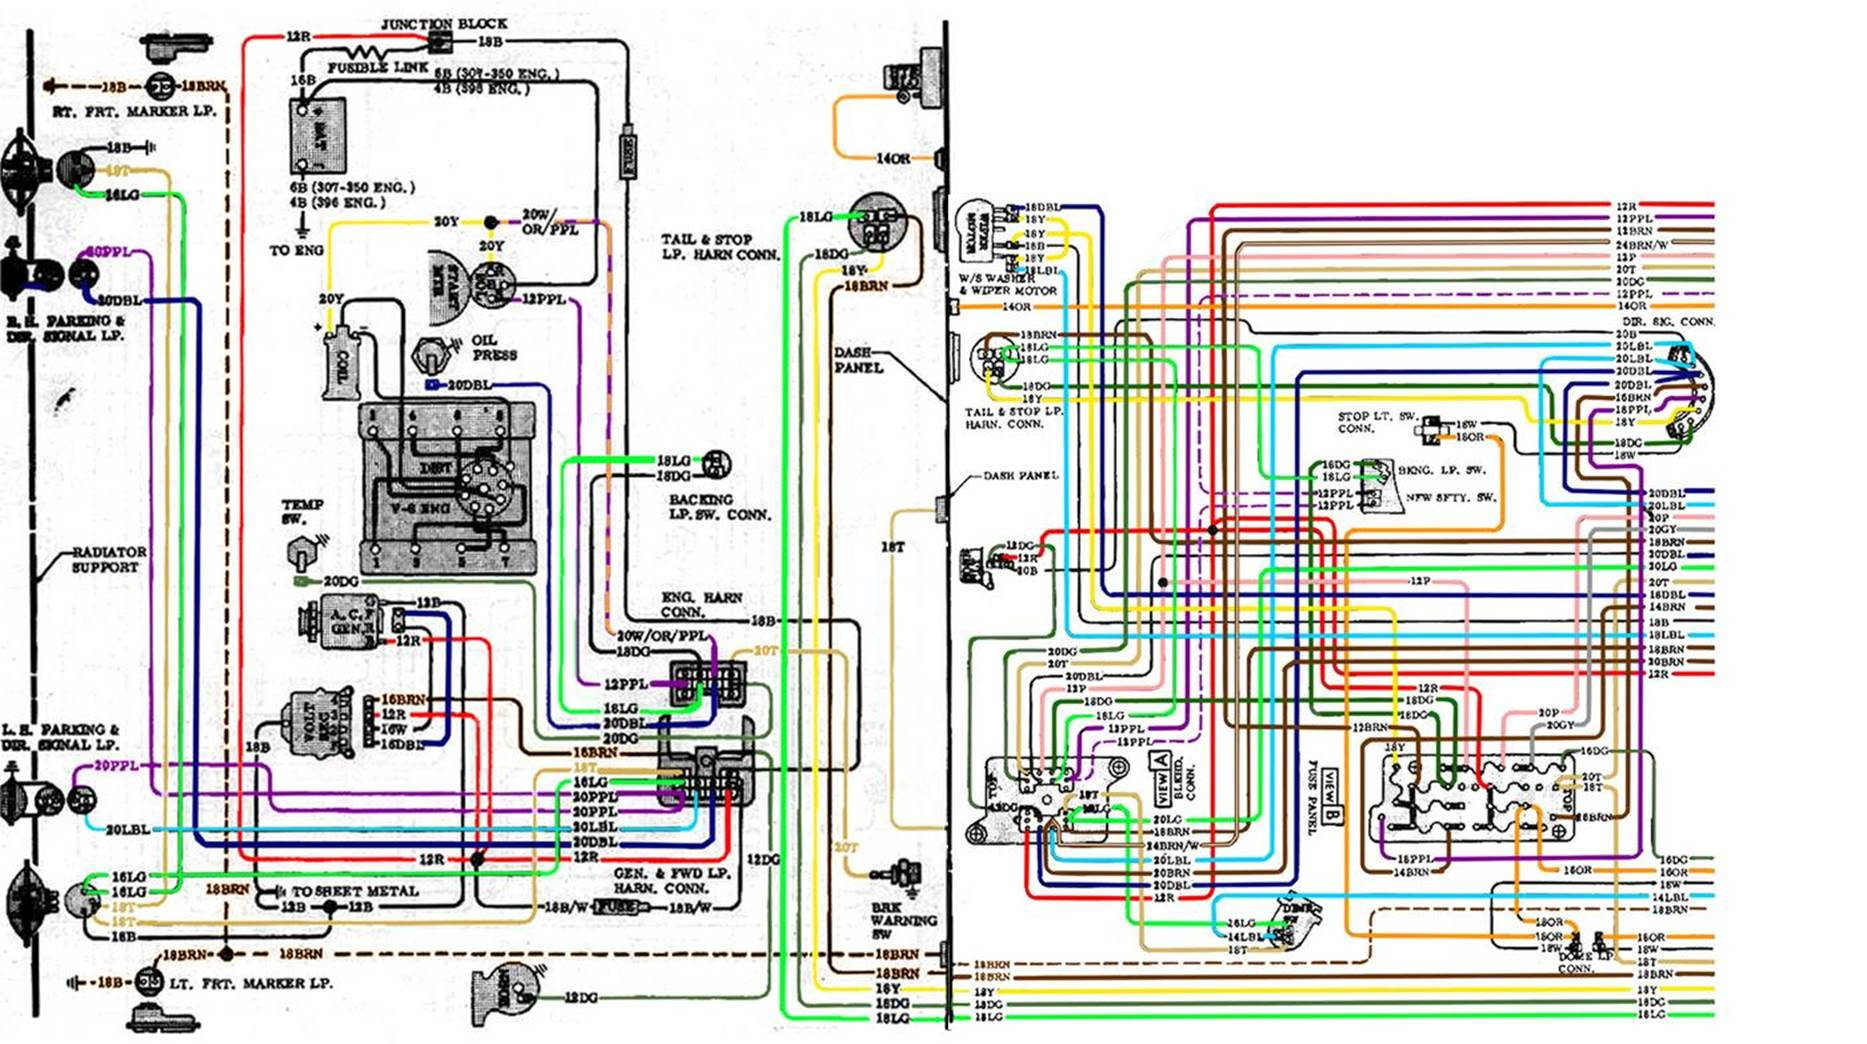 82 Gmc Sierra Wiring Diagrams | Wiring Diagram  Gmc Wiring Diagram Schematic on gmc trailer wiring, gmc truck schematics, 2005 gmc power distribution schematics, gmc truck fuse diagrams, gmc headlights, gmc engine, gmc schematic diagrams, chevrolet truck schematics, gmc yukon fuel pump diagram, gmc wiring color codes, gmc drawings, 83 gmc pickup schematics, 2000 gmc jimmy fuel pump schematics, gmc truck wiring harness,